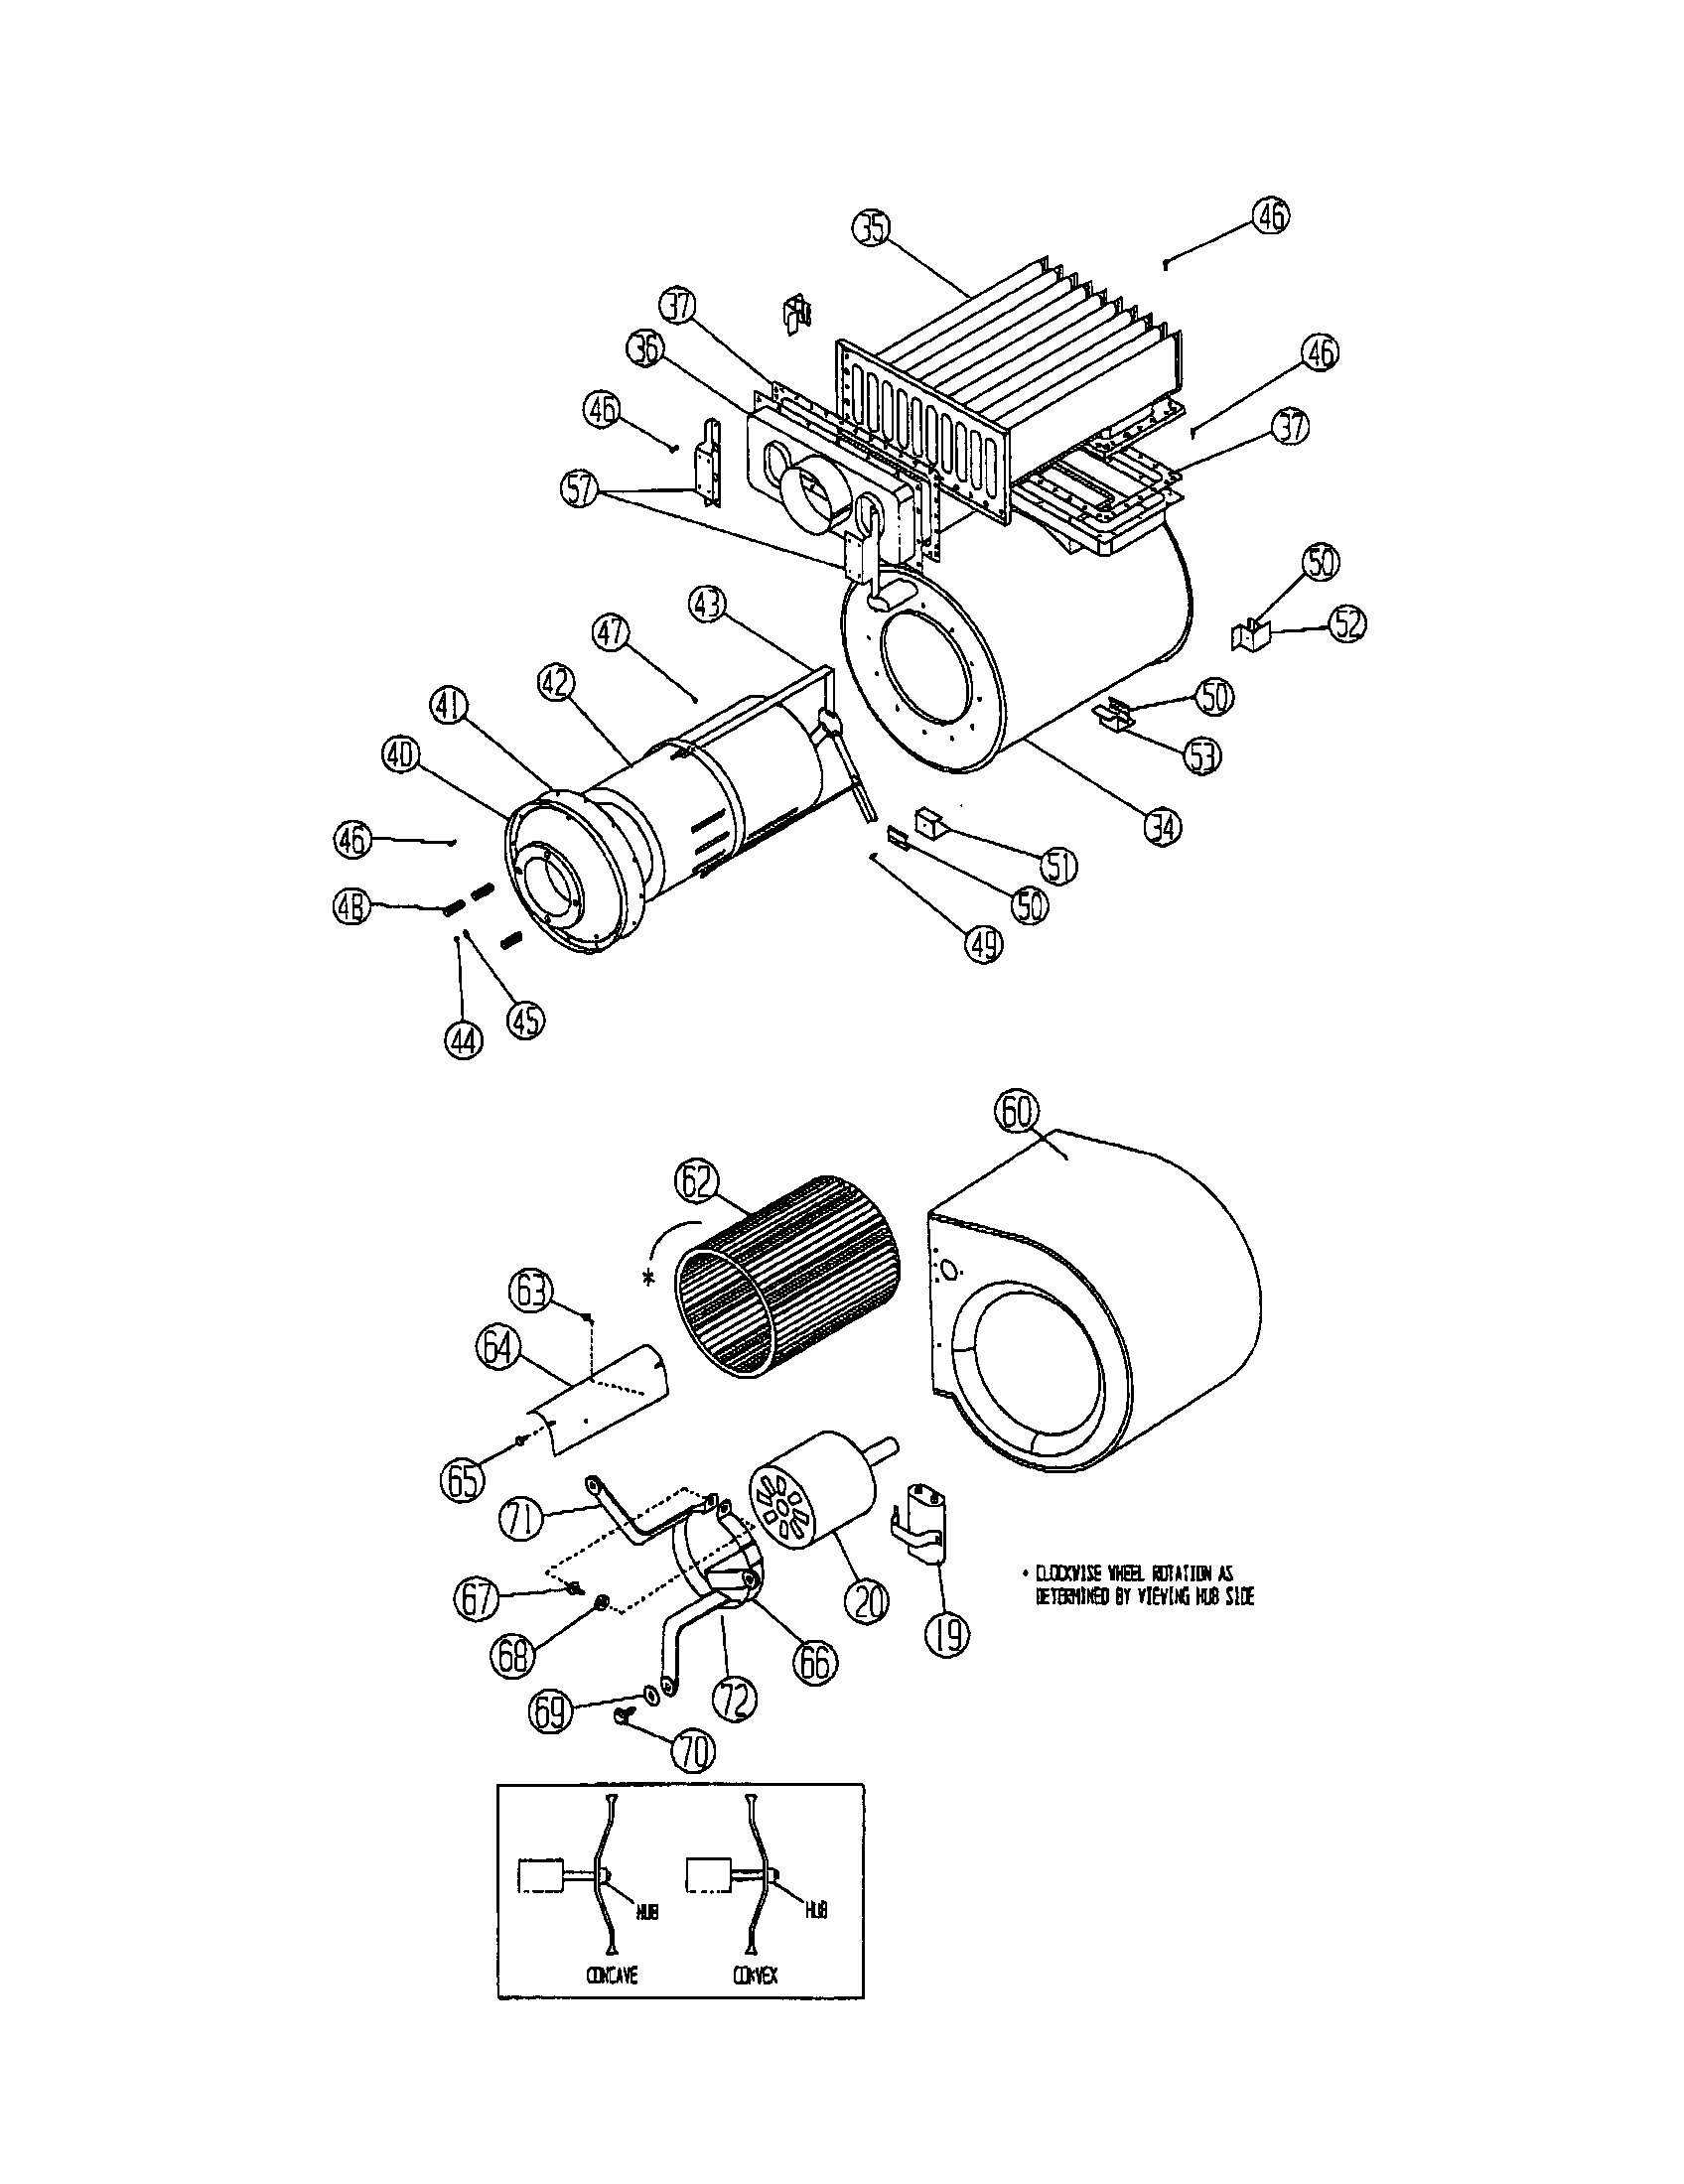 hight resolution of ducane furnace parts images